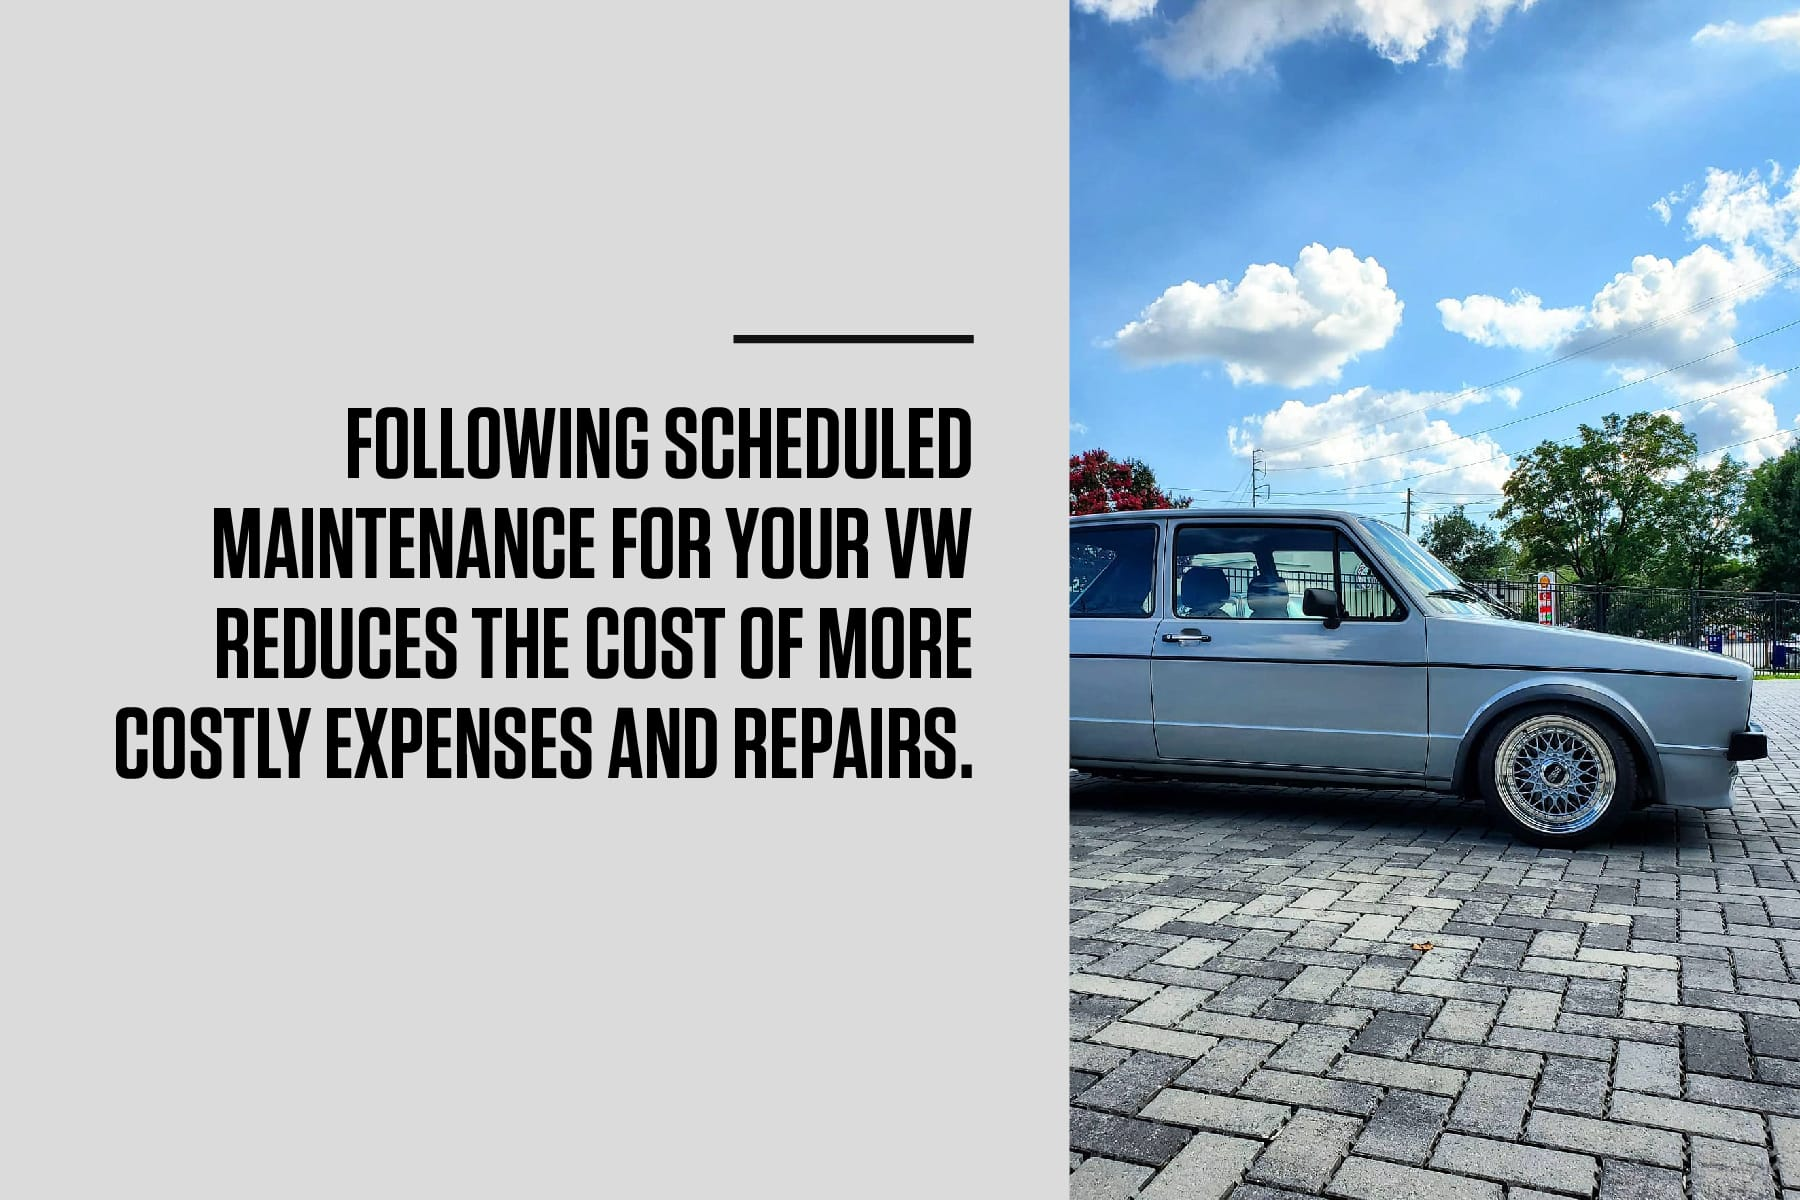 following scheduled maintenance reduces costly repairs